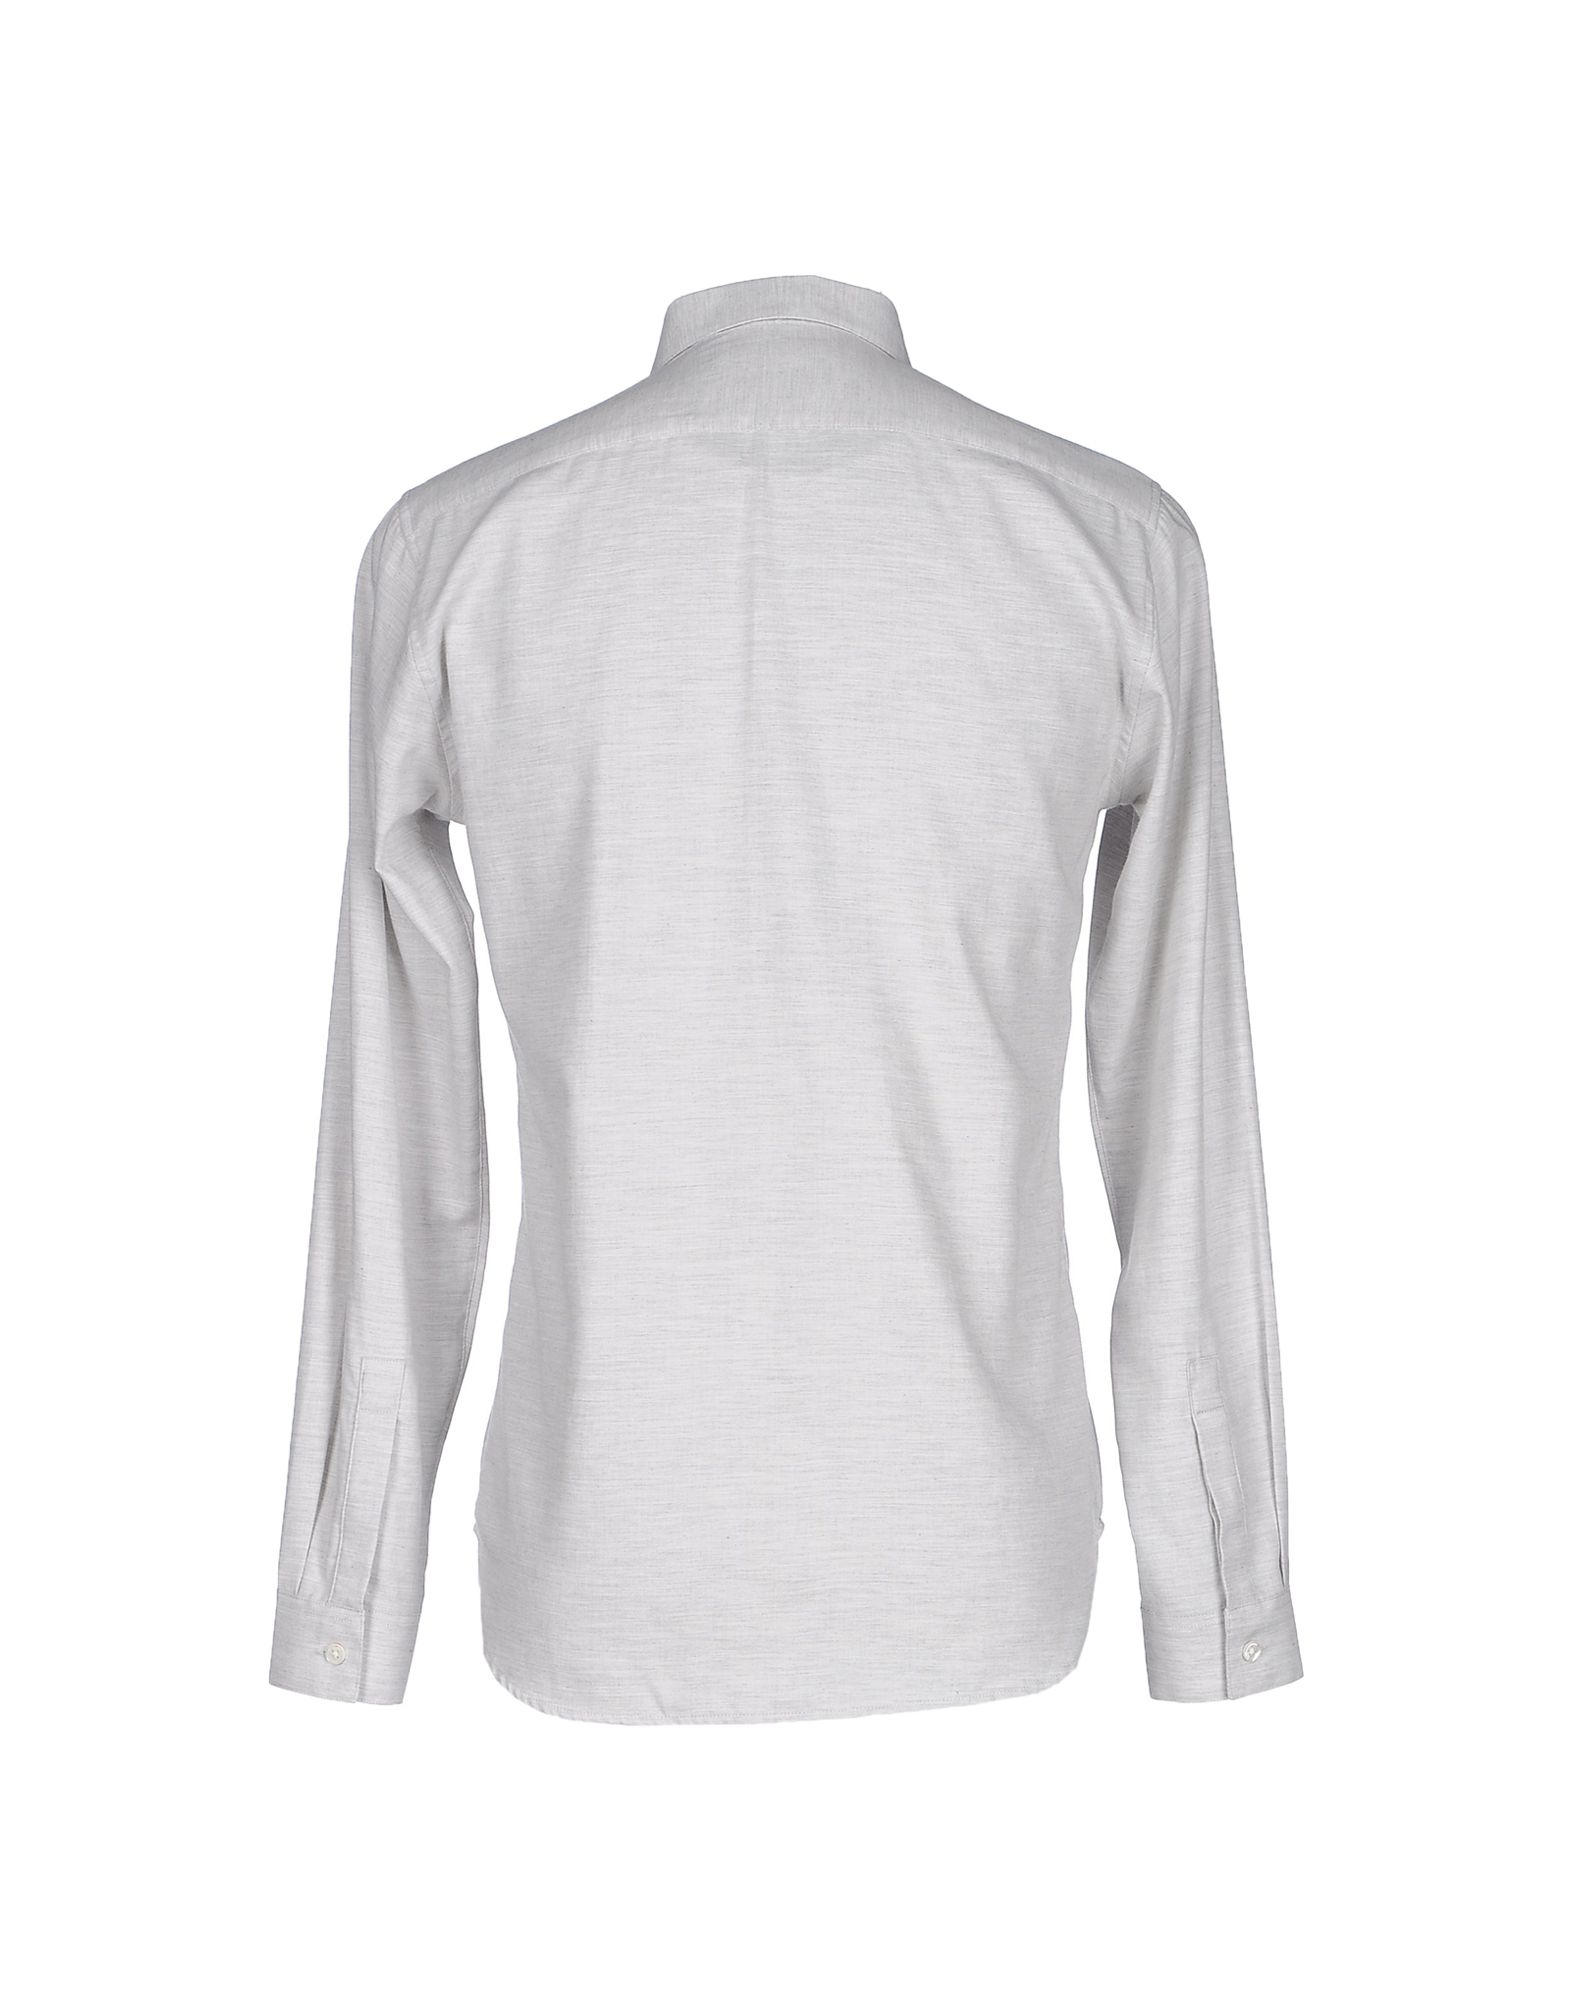 Theory Shirt In Gray For Men Lyst